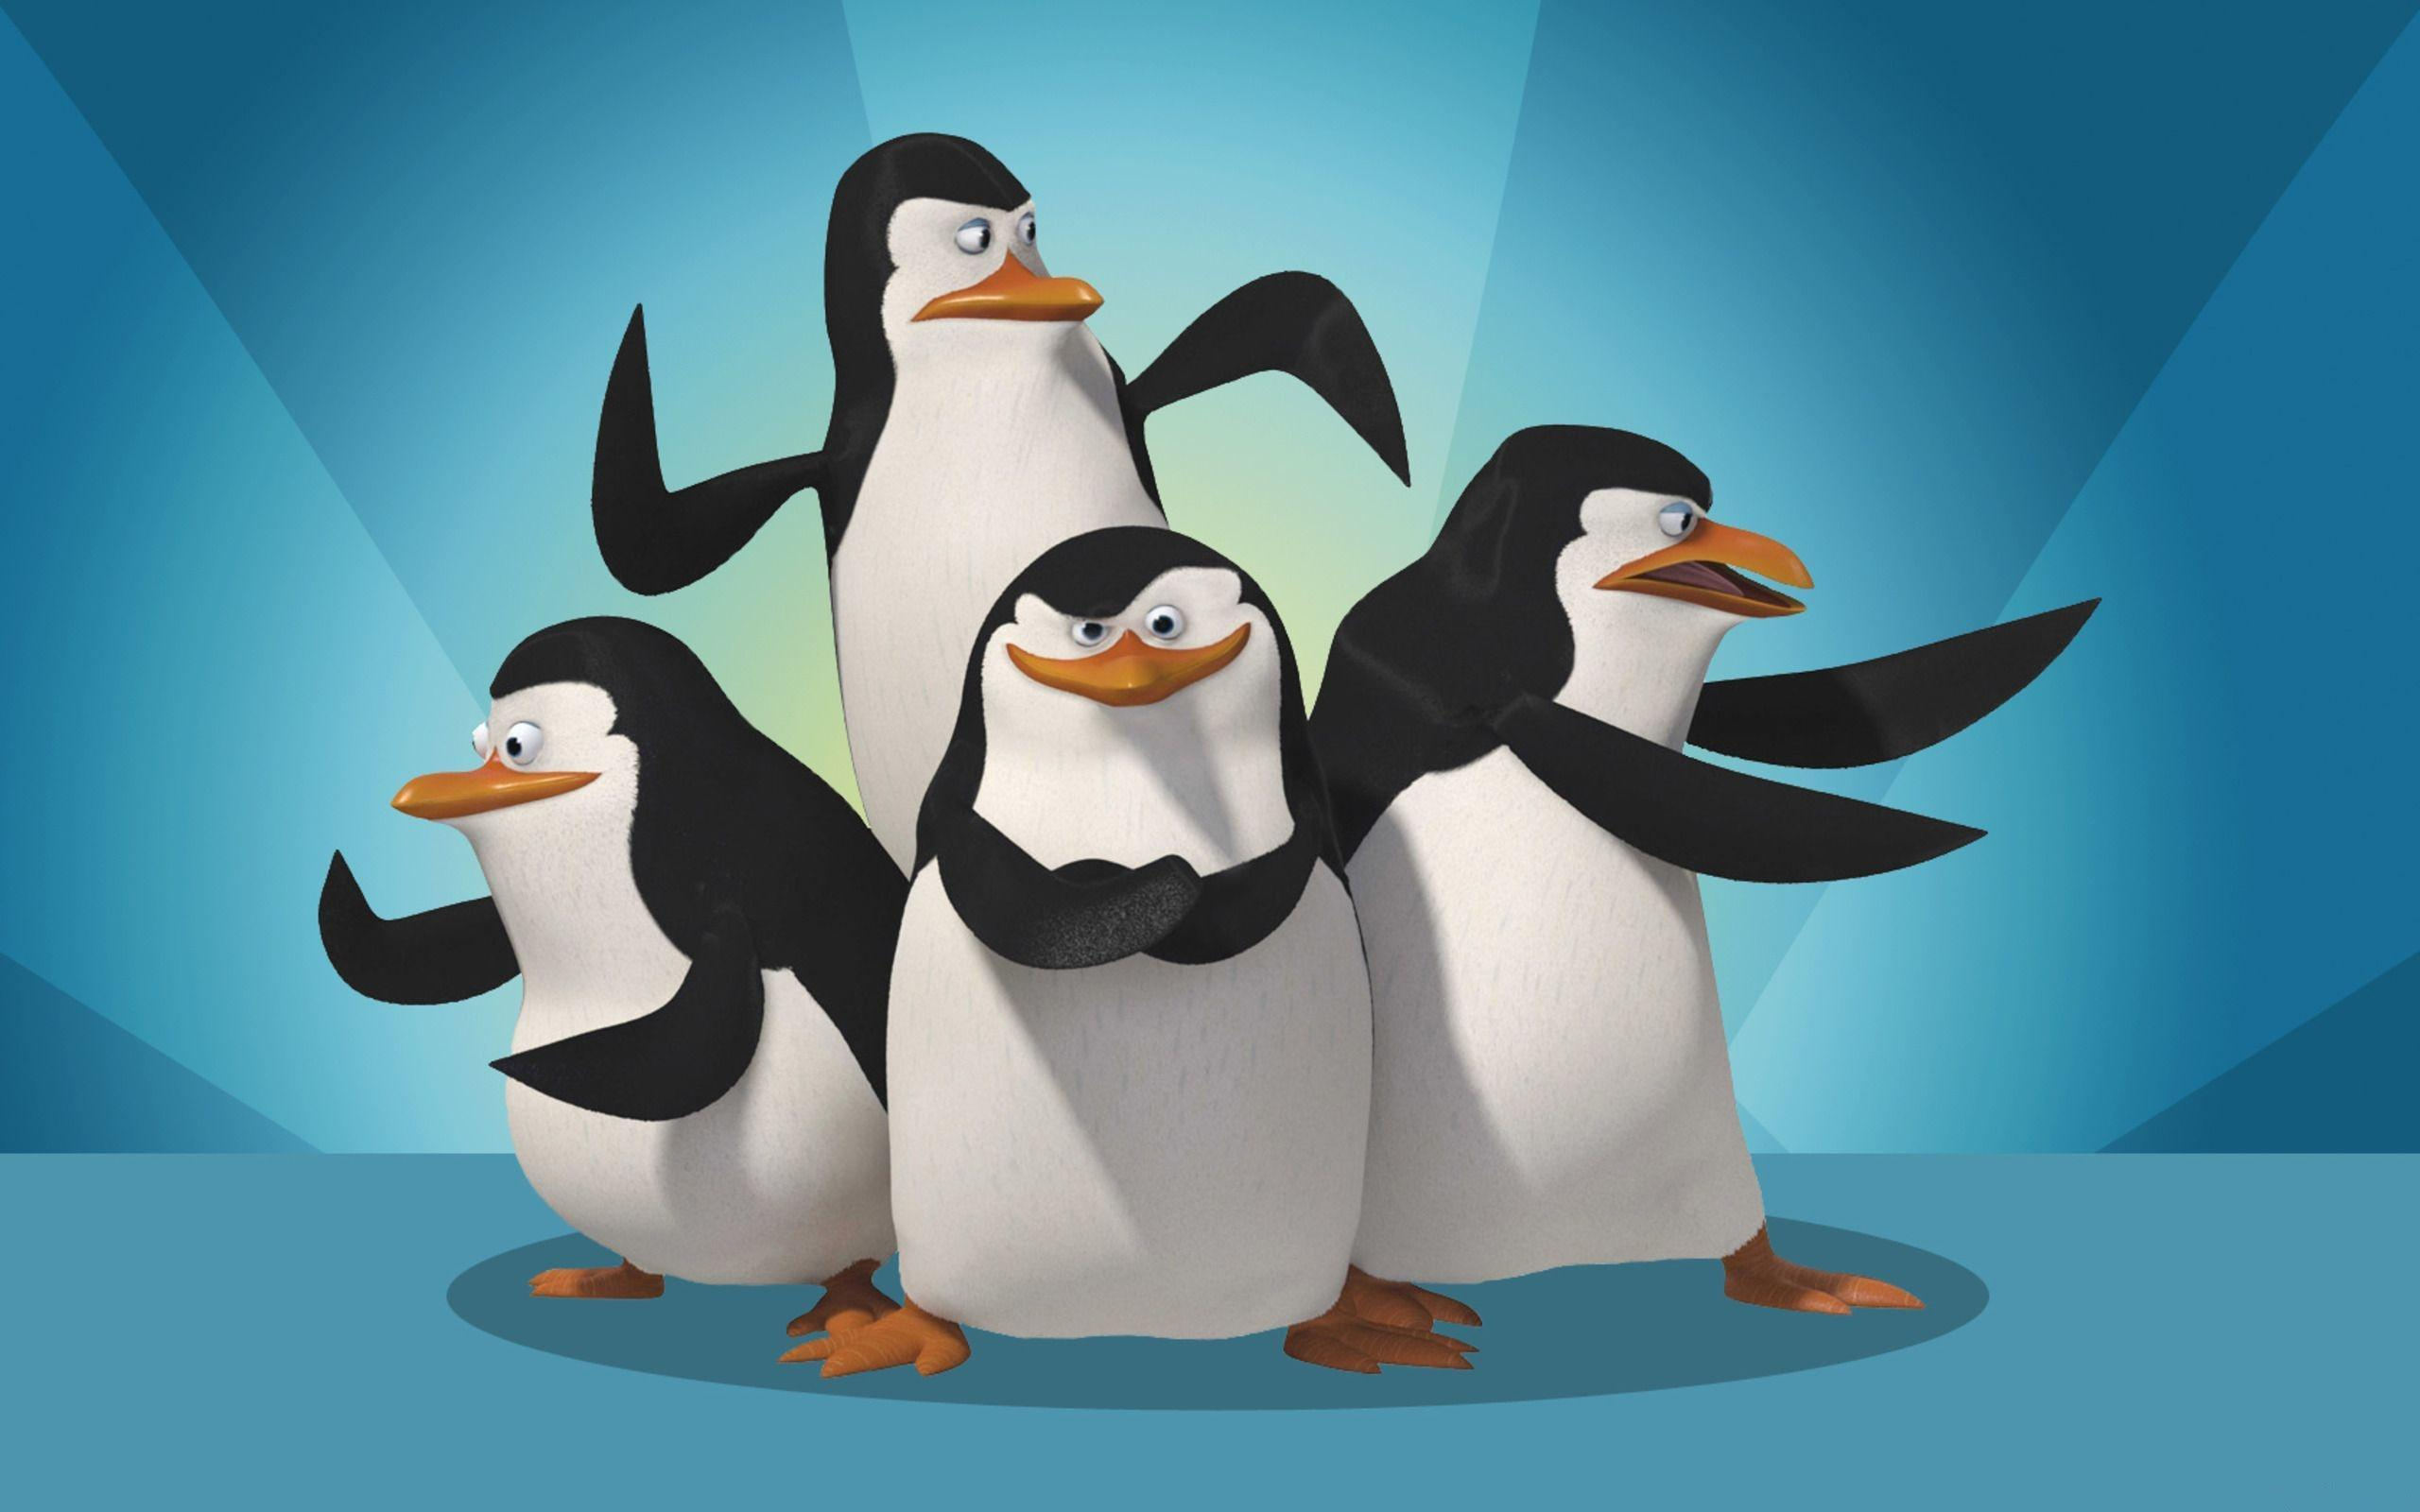 Penguins of madagascar वॉलपेपर